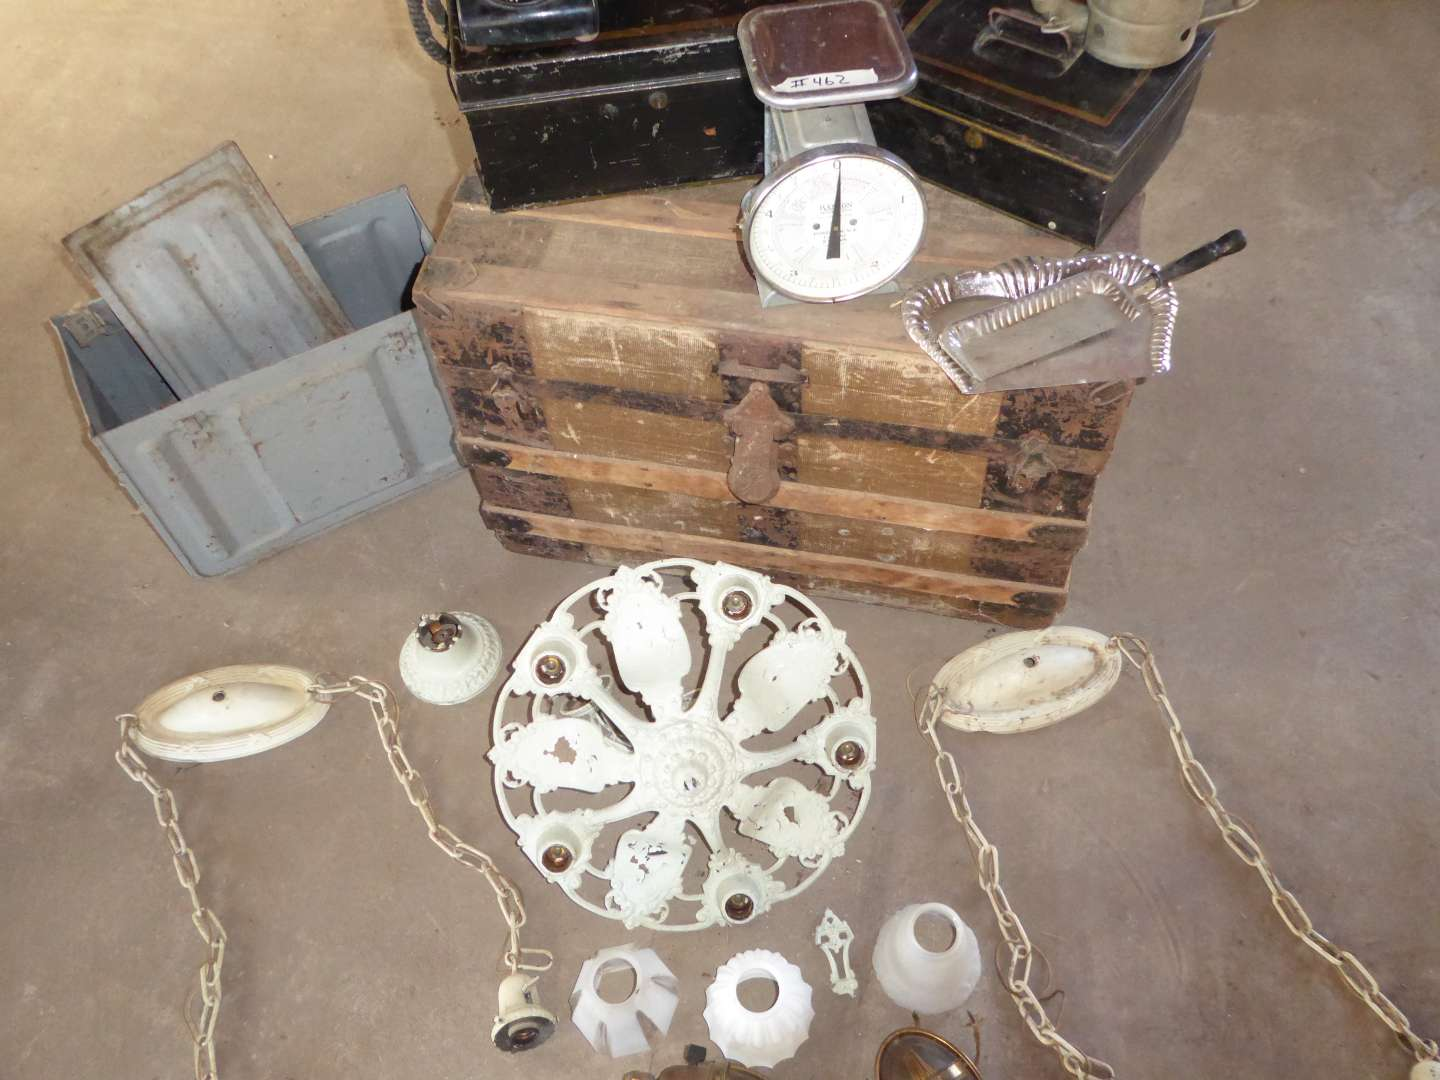 Lot # 462 - Vintage Lot - Trunk, Hanson Scale, Ammo Box, Rotary Phone, Cash Boxes and More! (main image)